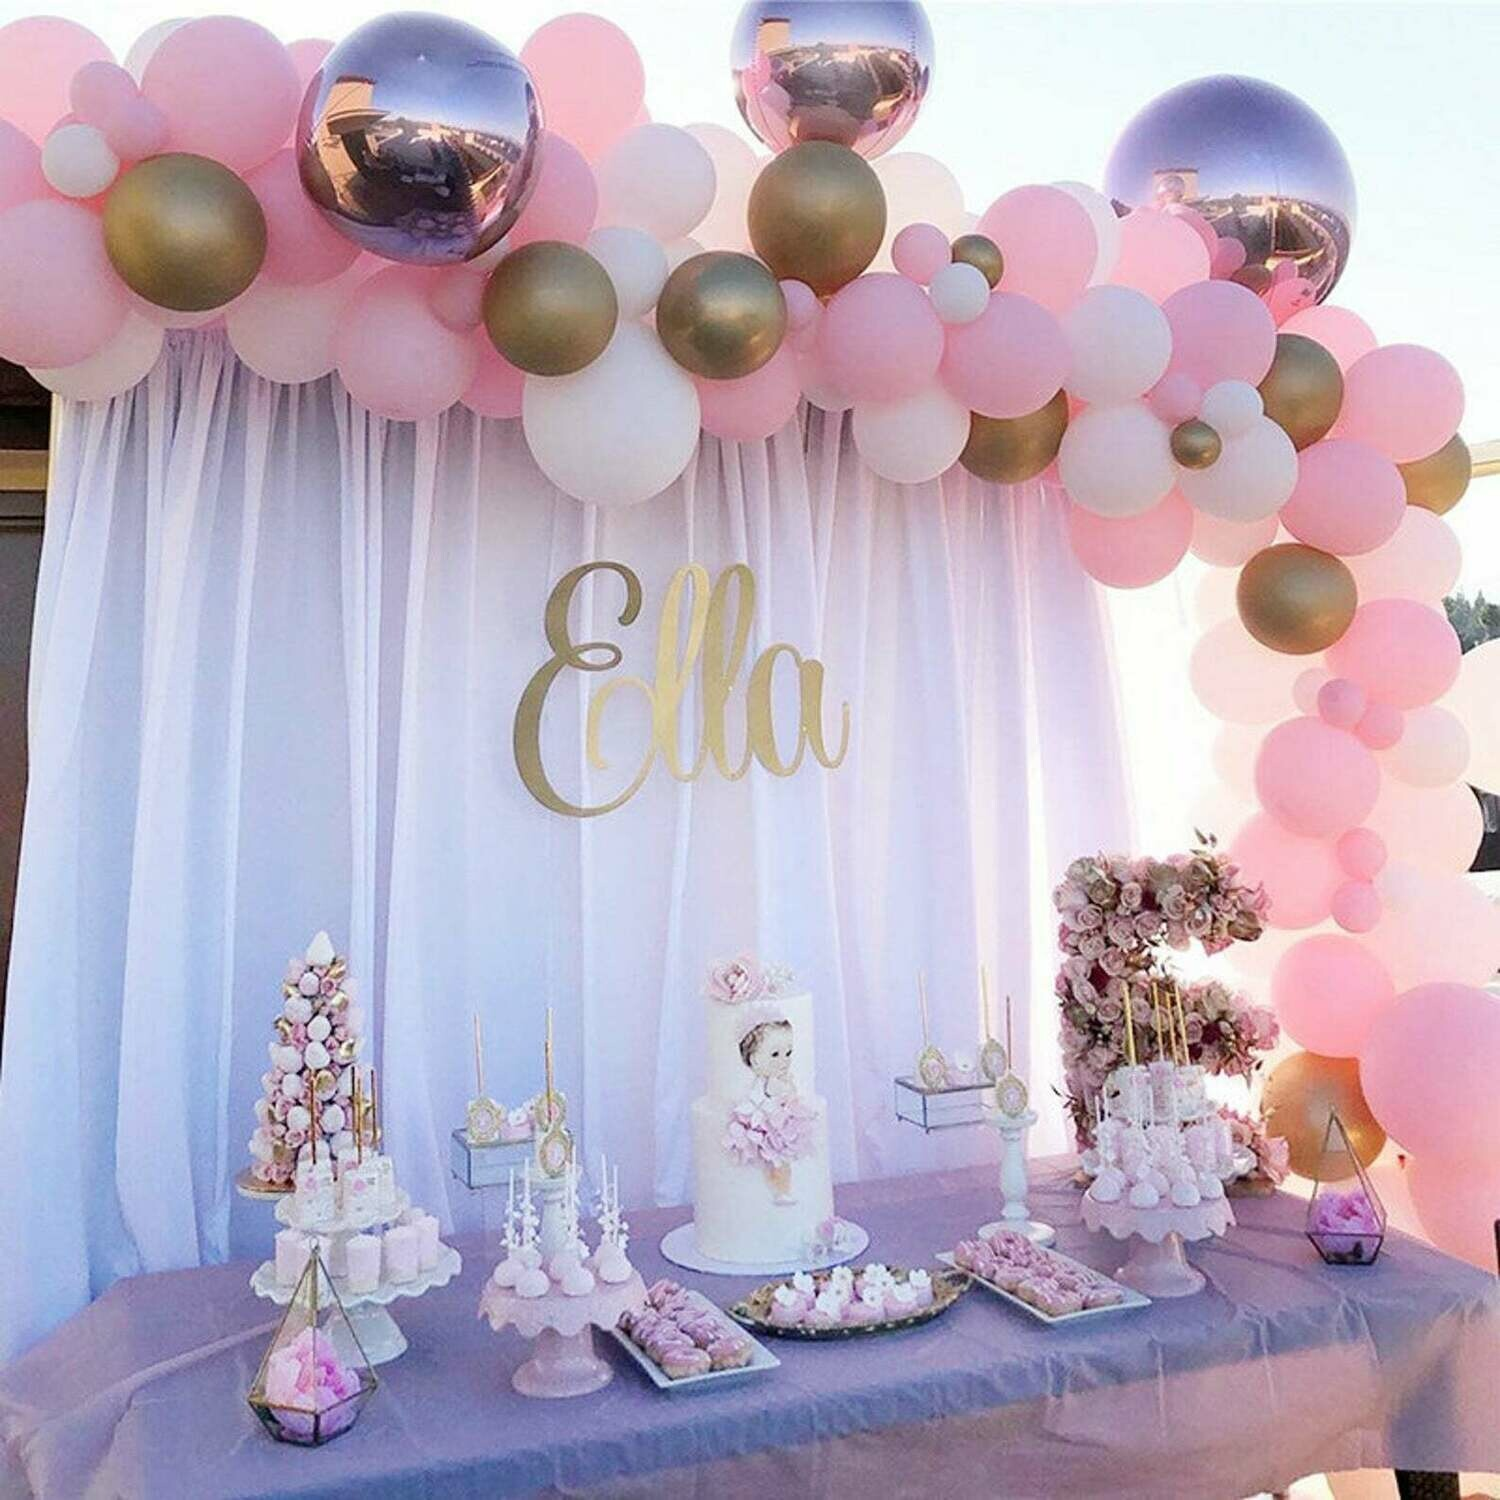 131pcs Pastel Baby Pink Latex Balloons Macaron White Balloon Garland Arch Kit Wedding Birthday Baby Shower Party Decorations